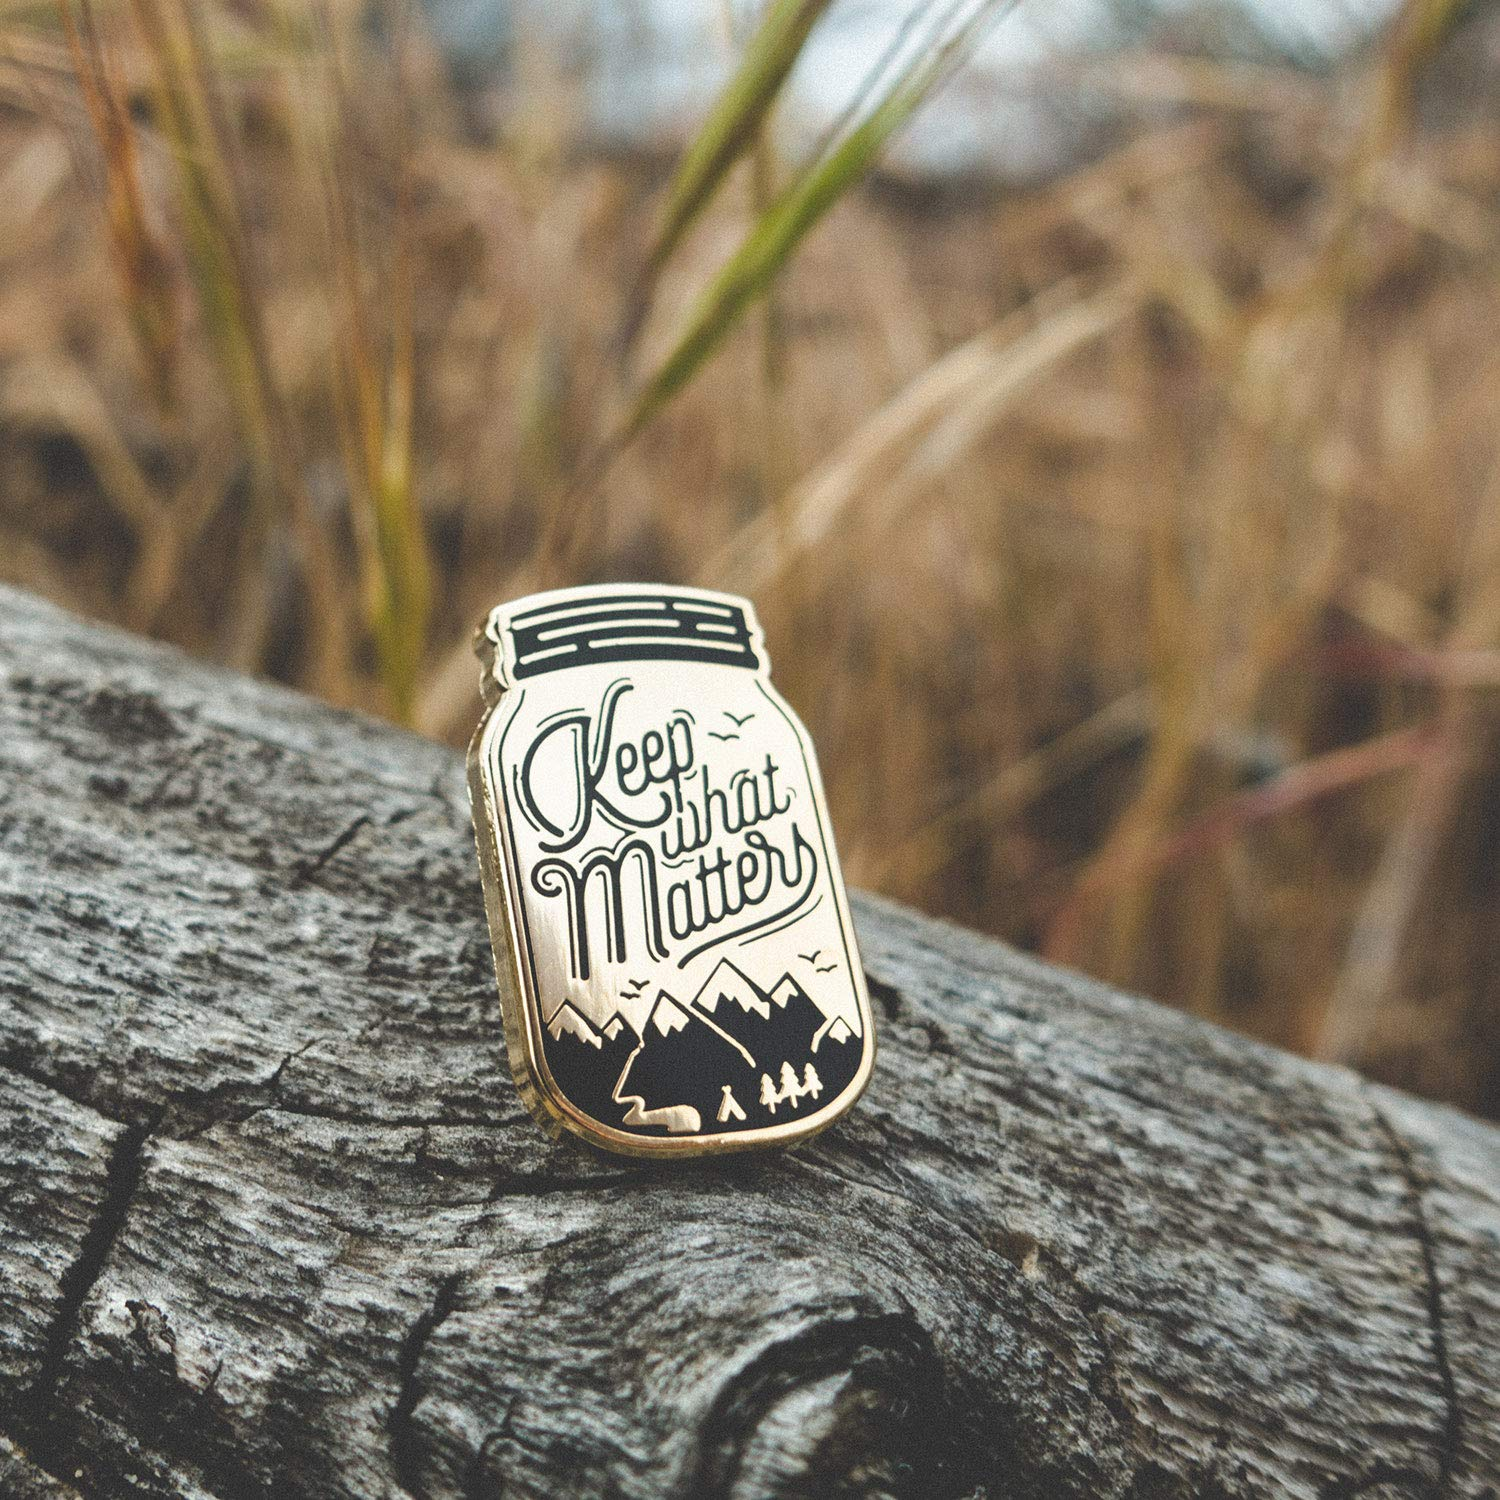 Enjoy The Journey with Deluxe Pin Lock Asilda Store Lapel Enamel Pin